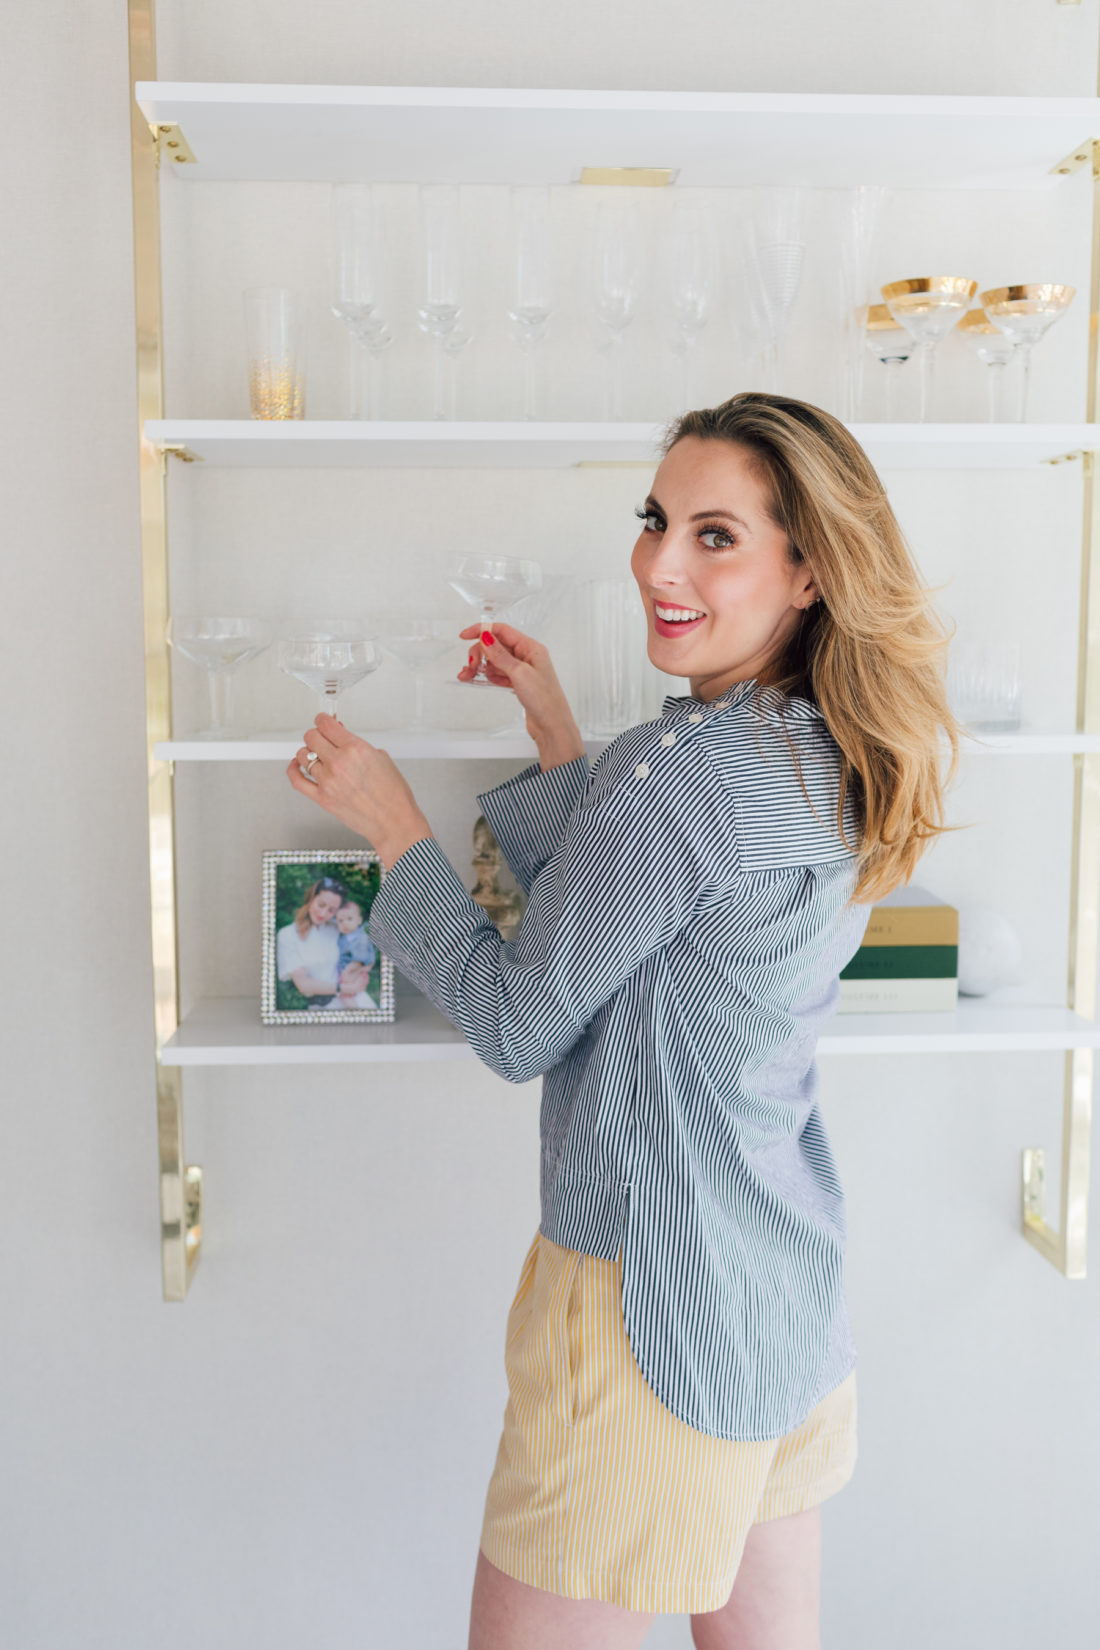 Eva Amurri Martino stands next to shelving in her dining room